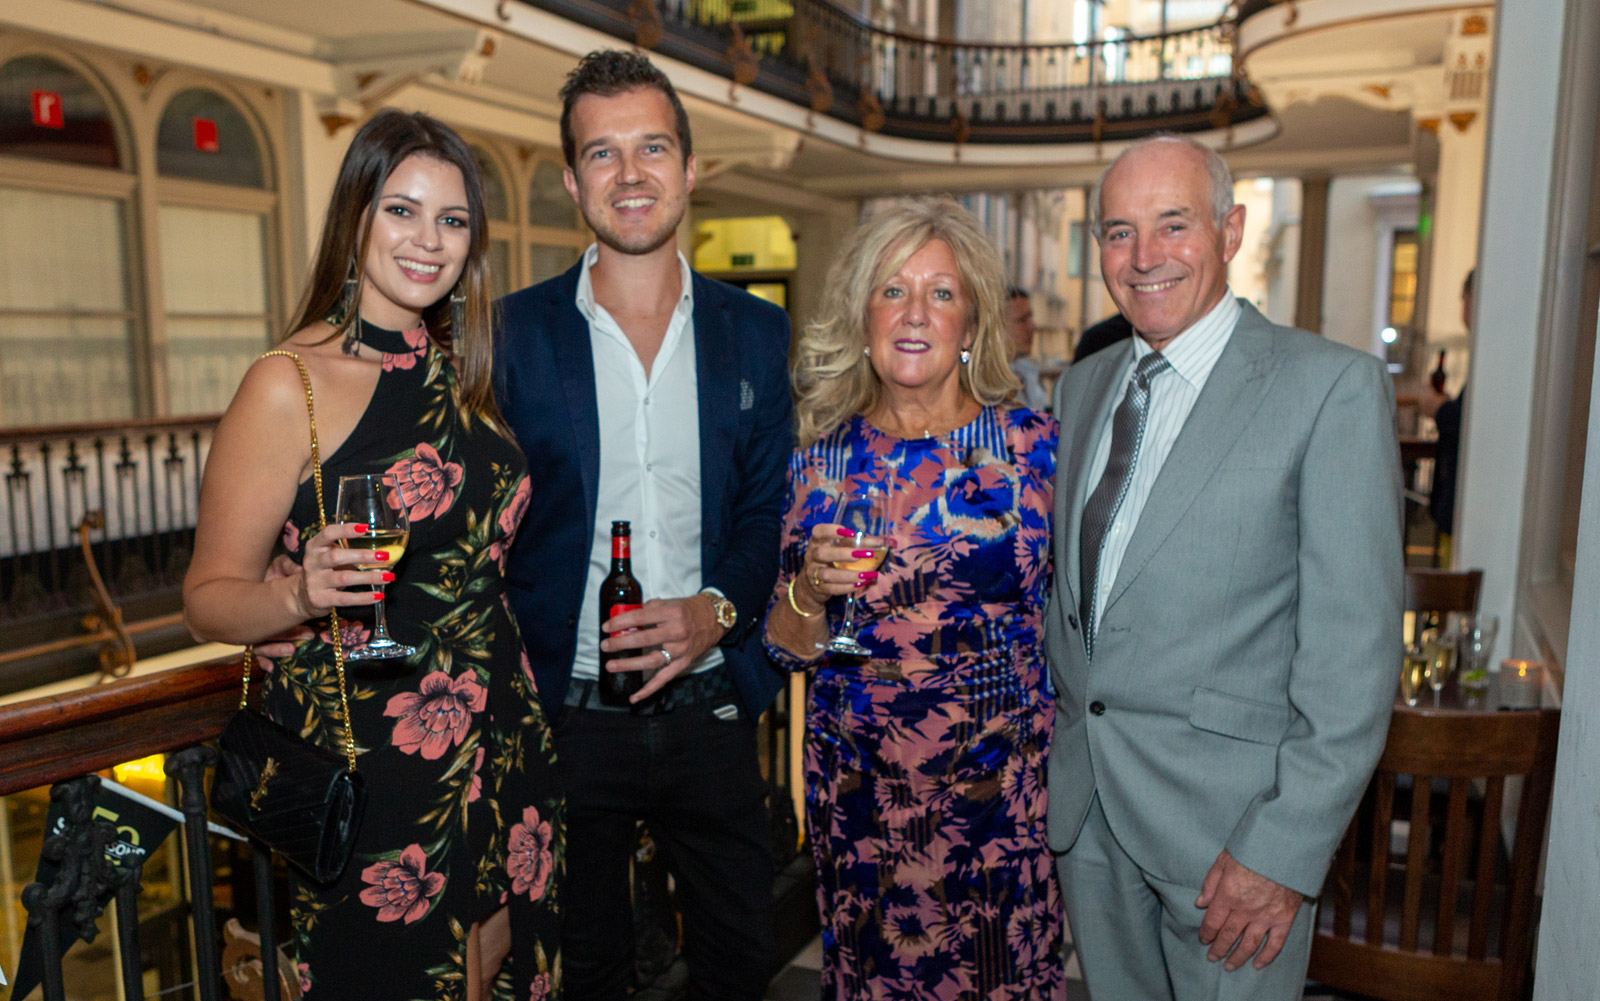 Jennifer, Jordan, Lorraine and Stewart Brookes